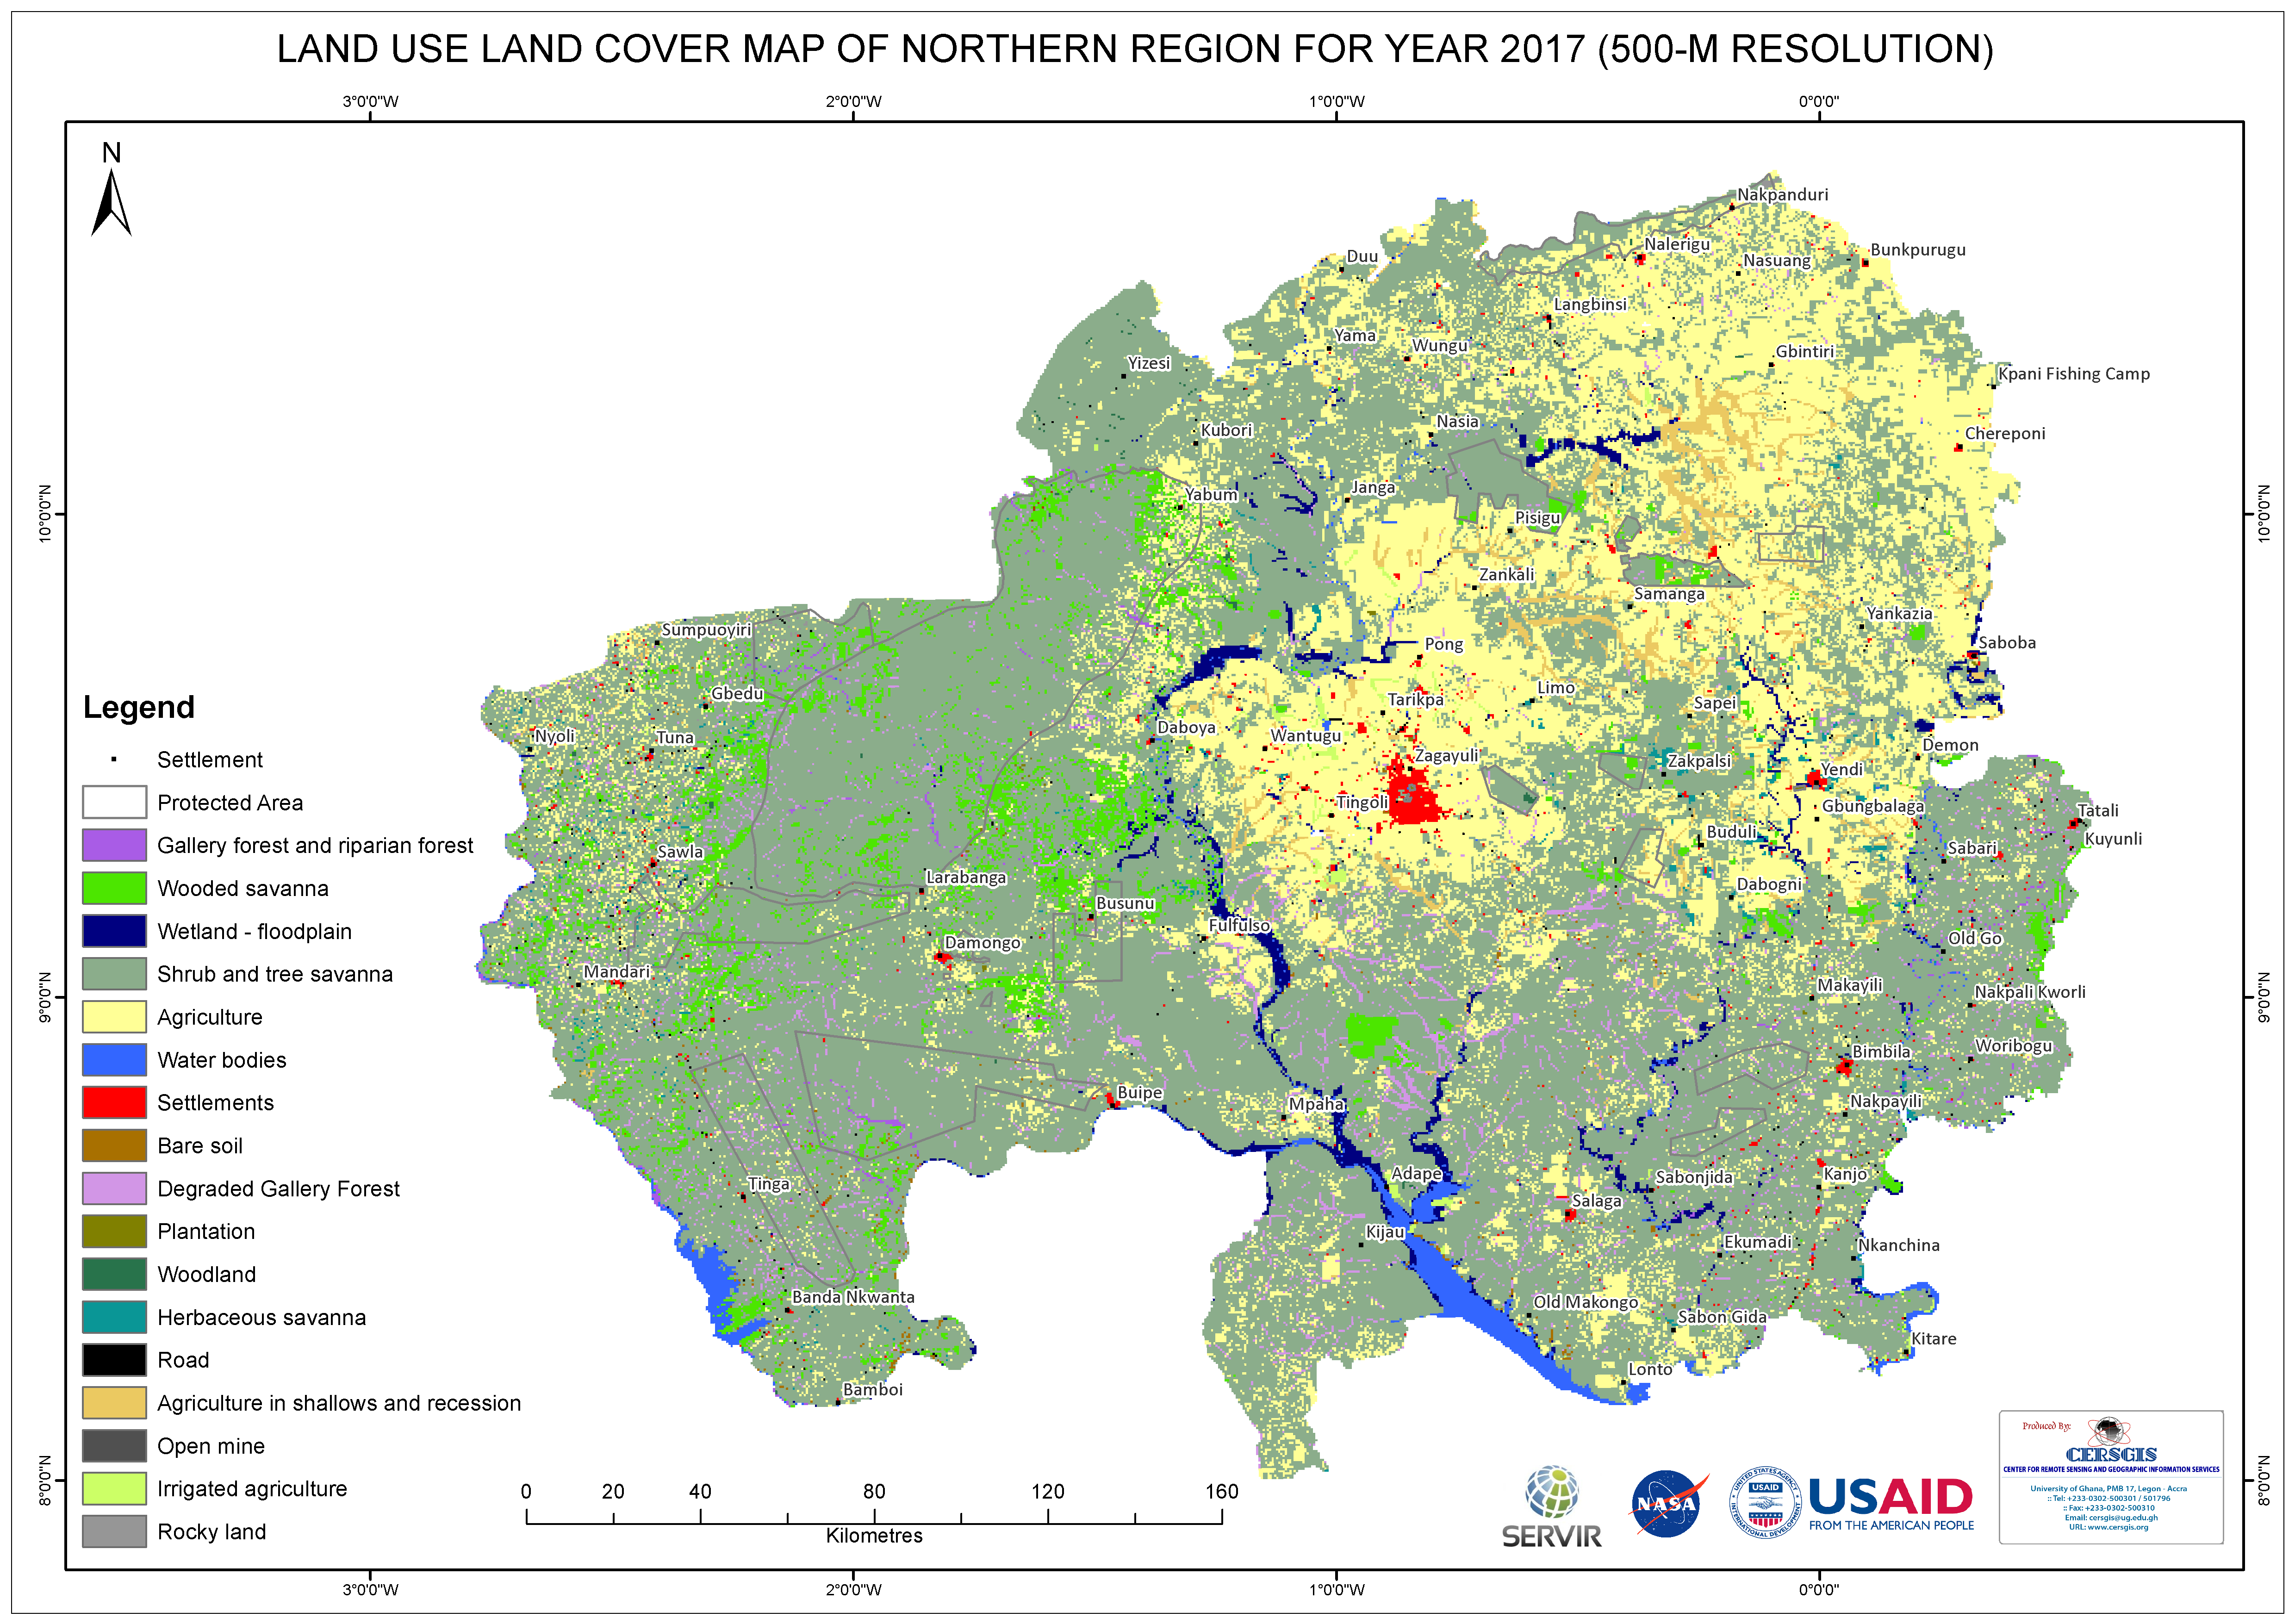 Land Cover Map for Northern Region